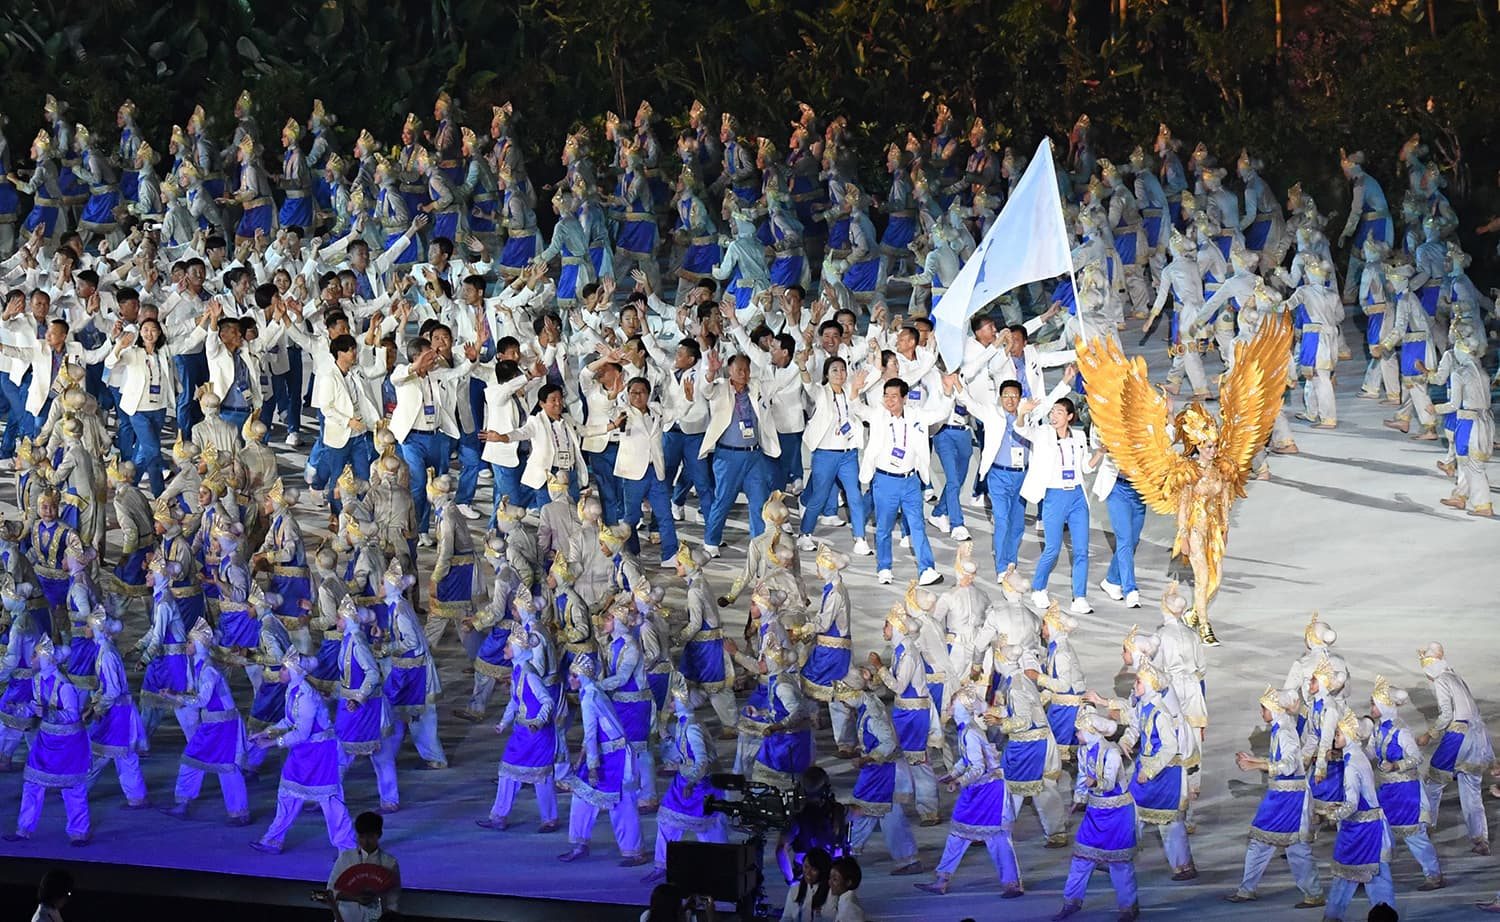 The Unified Korea delegation parades during the opening ceremony of the 2018 Asian Games. —AFP